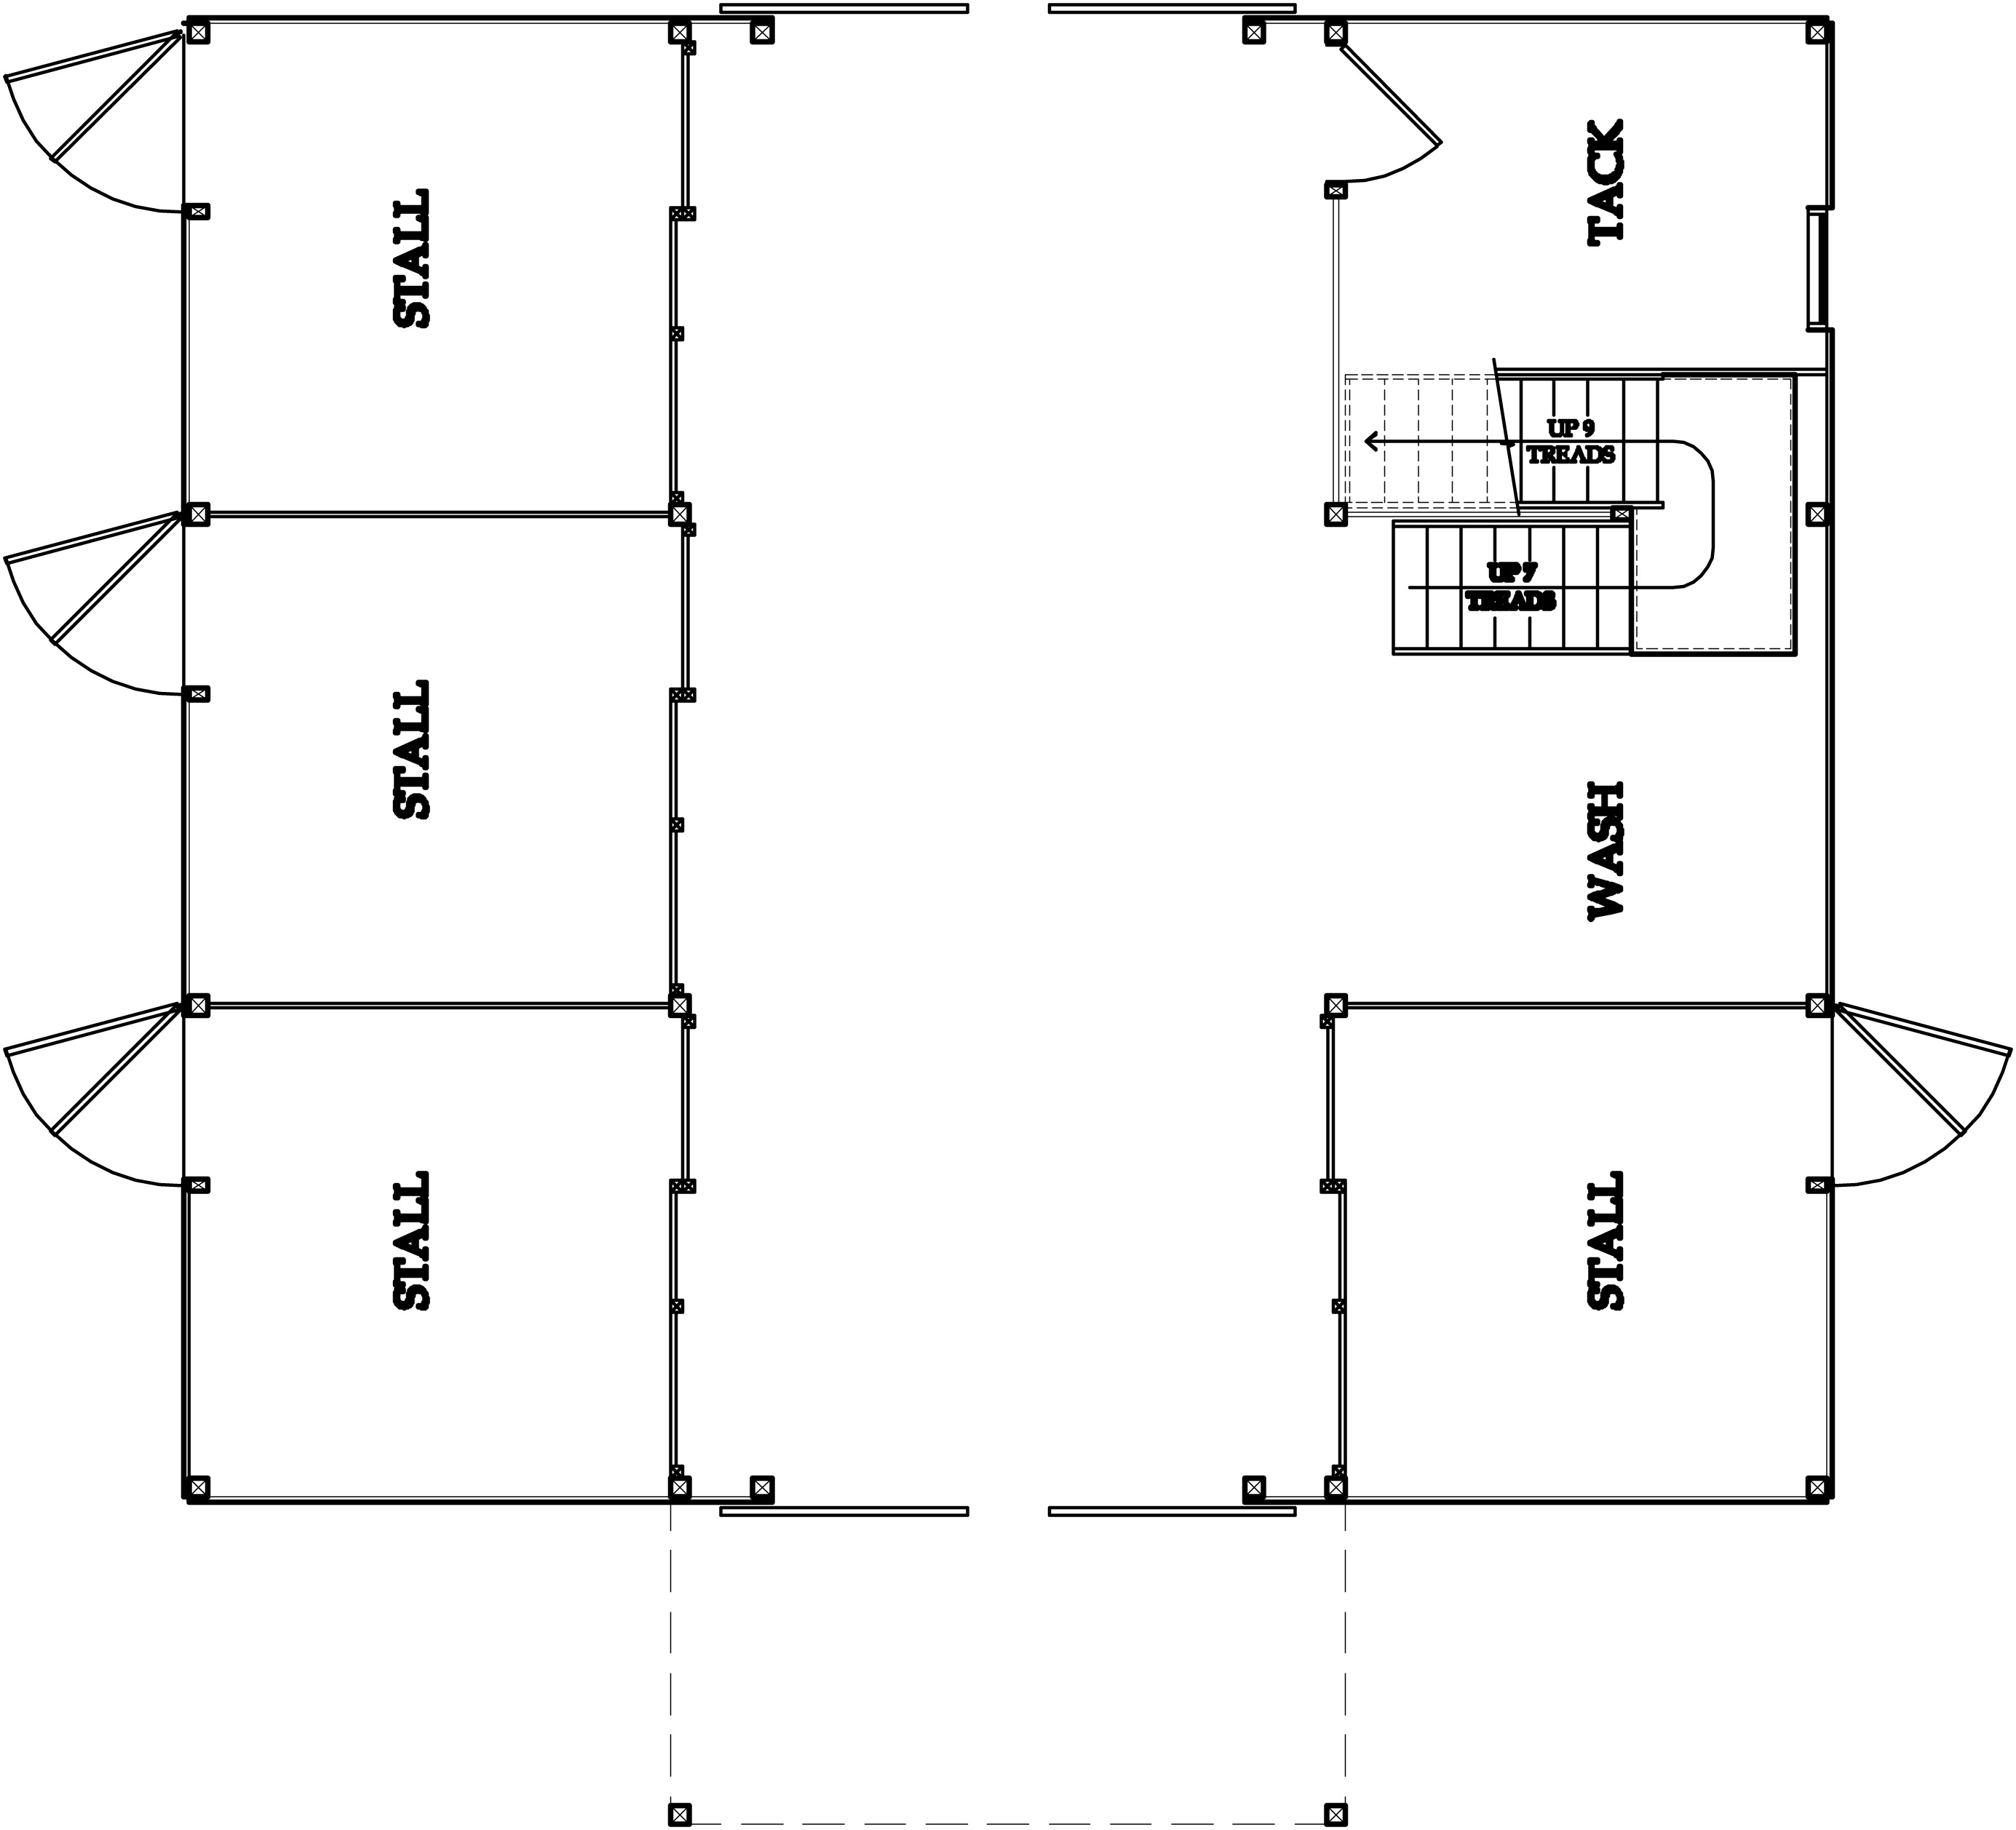 nighthawkmain floor similiar horse barn layouts floor plans keywords on horse barn layouts floor plans - Horse Barn Design Ideas